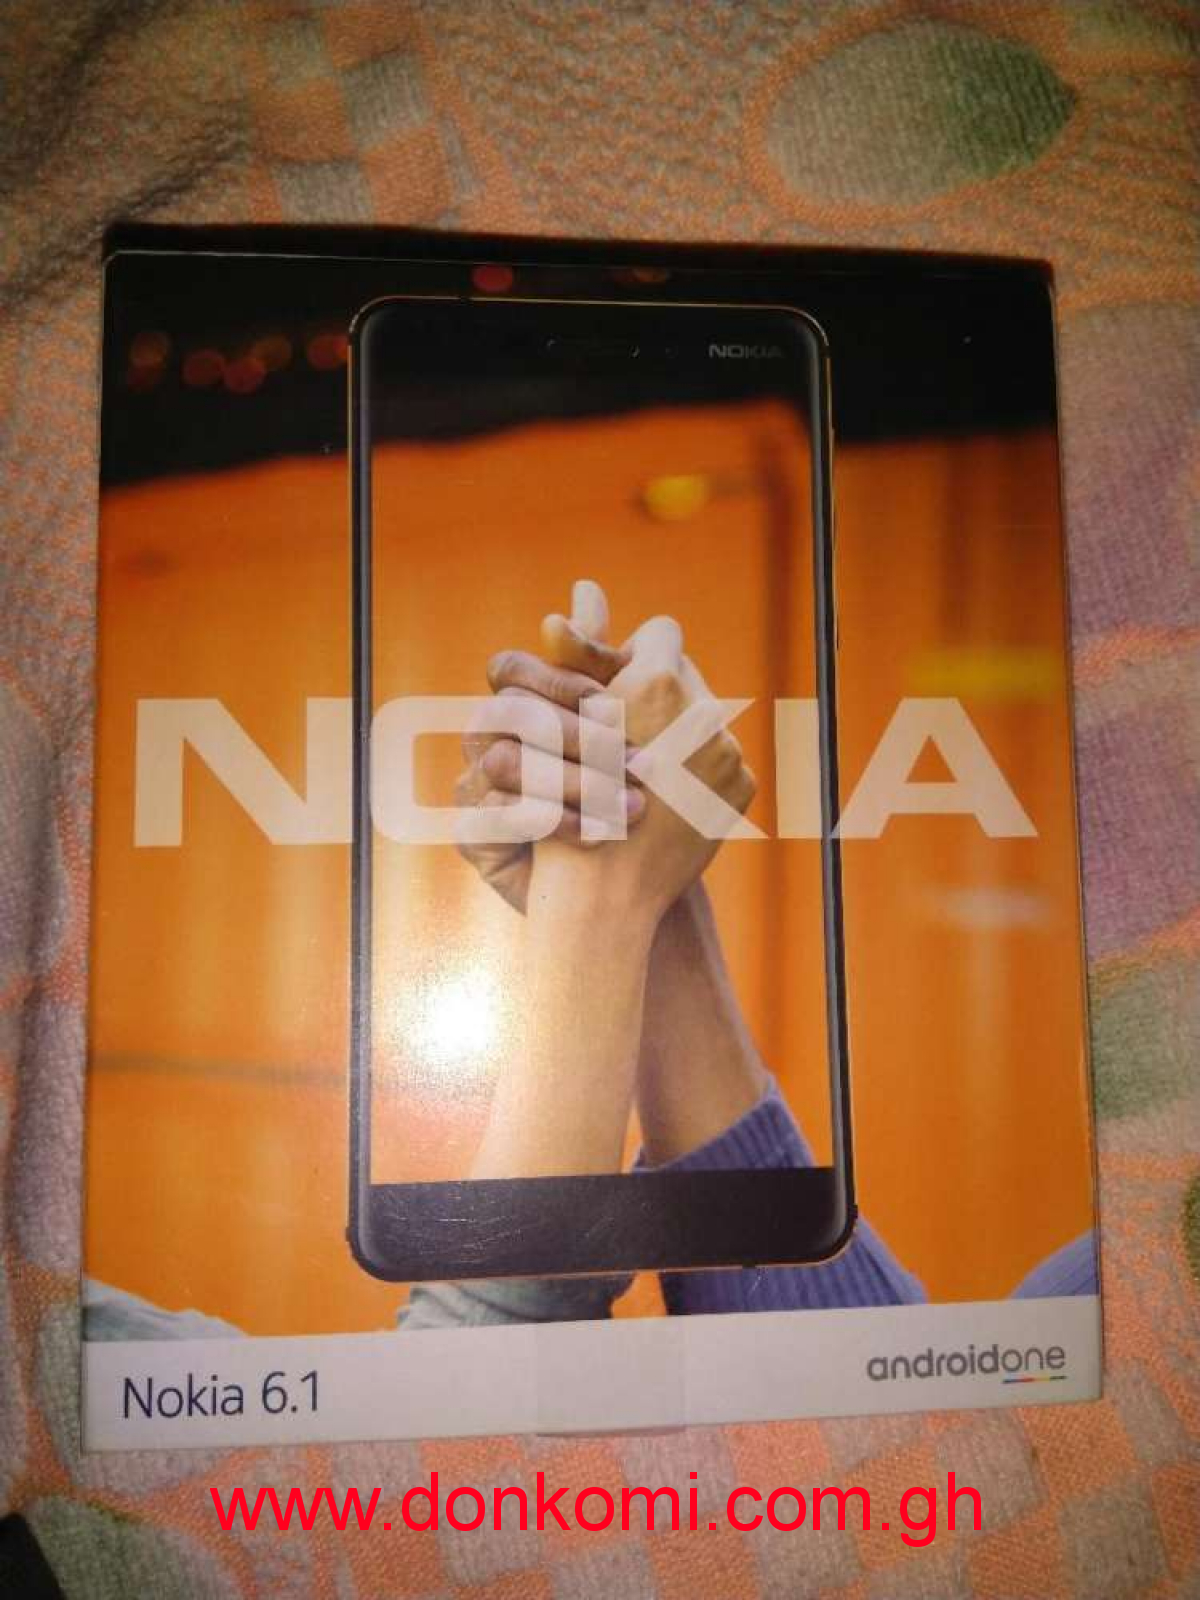 Nokia 6.1 (2018) only two days used for ghs 1000 only.